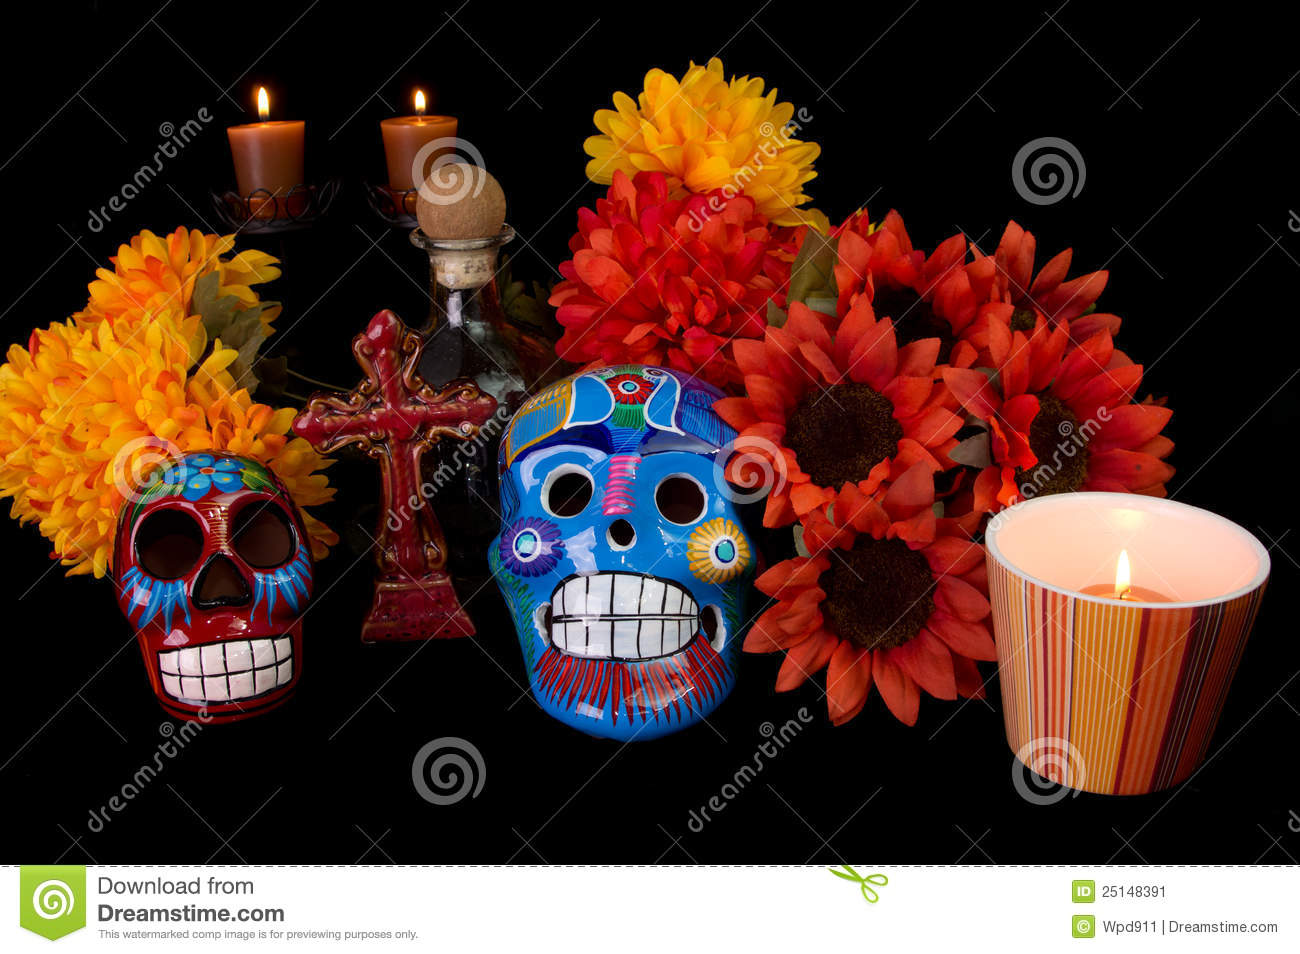 Dia De Los Muertos (Day of the Dead) Altar